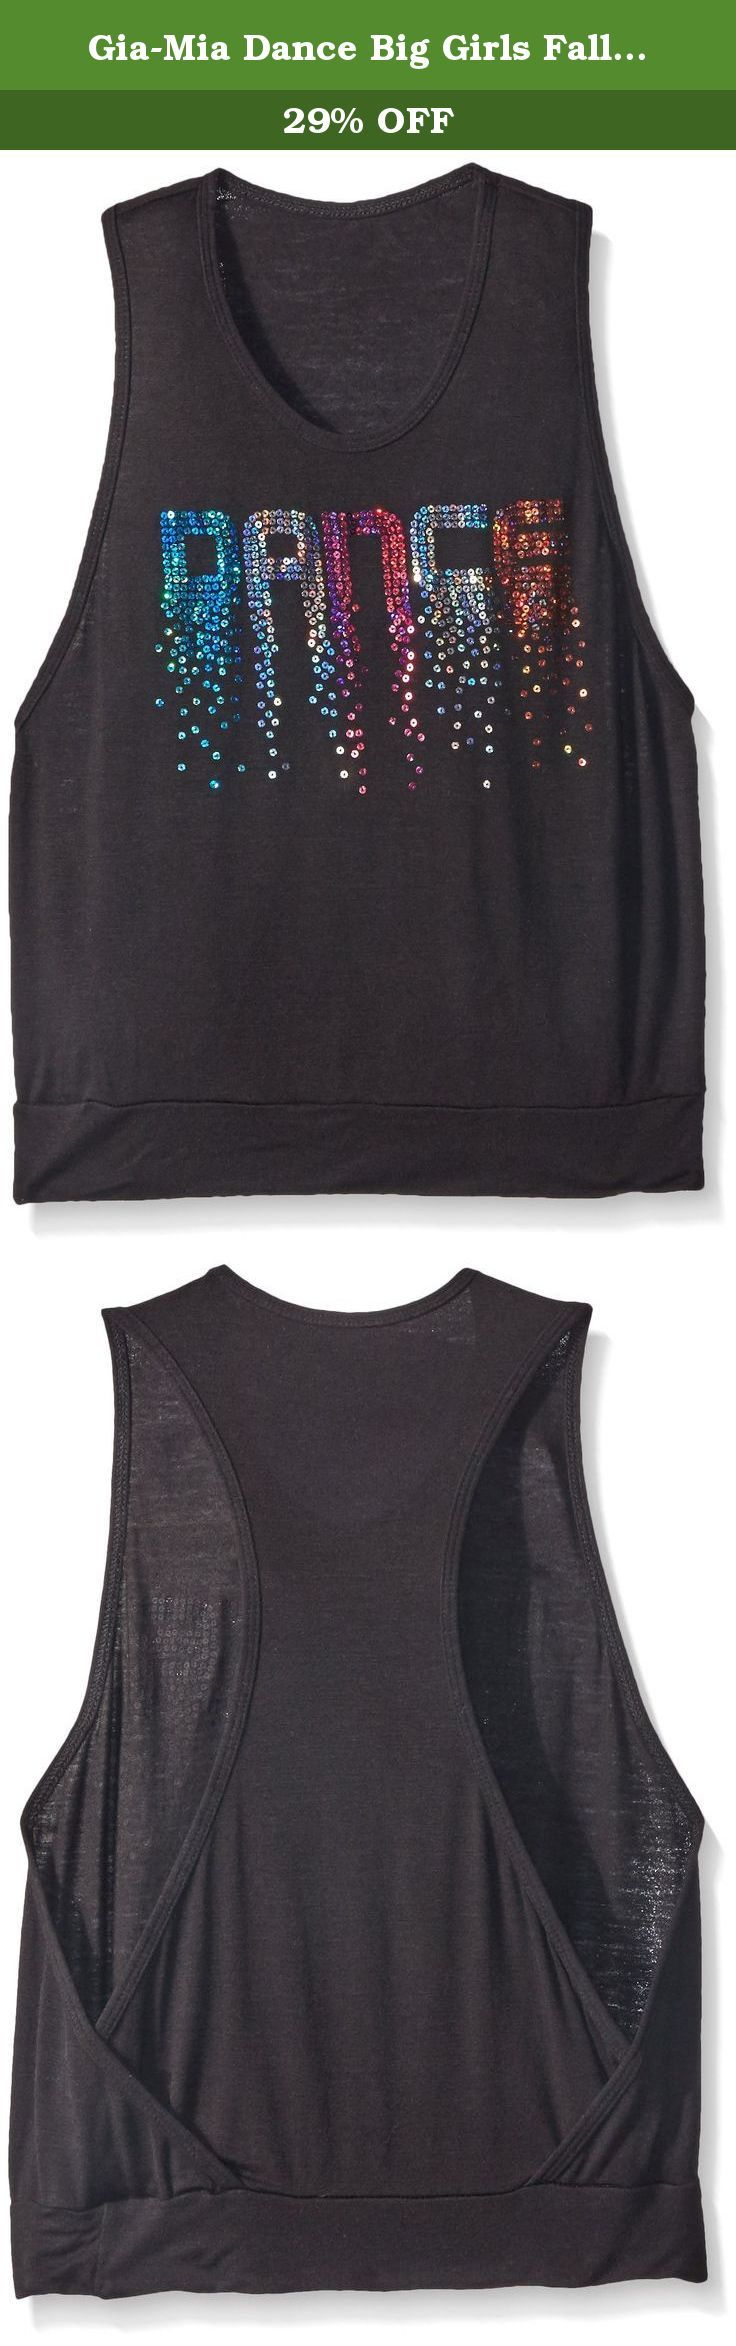 Gia-Mia Dance Big Girls Falling Tank, Black, Small. This rayon spandex tank features a stylish back and cut out sides for the perfect combination of comfort and fashion. You can layer multiple colors underneath to match the sequin dance motif which adds the finishing touch to what will be one of your fave tops ever.